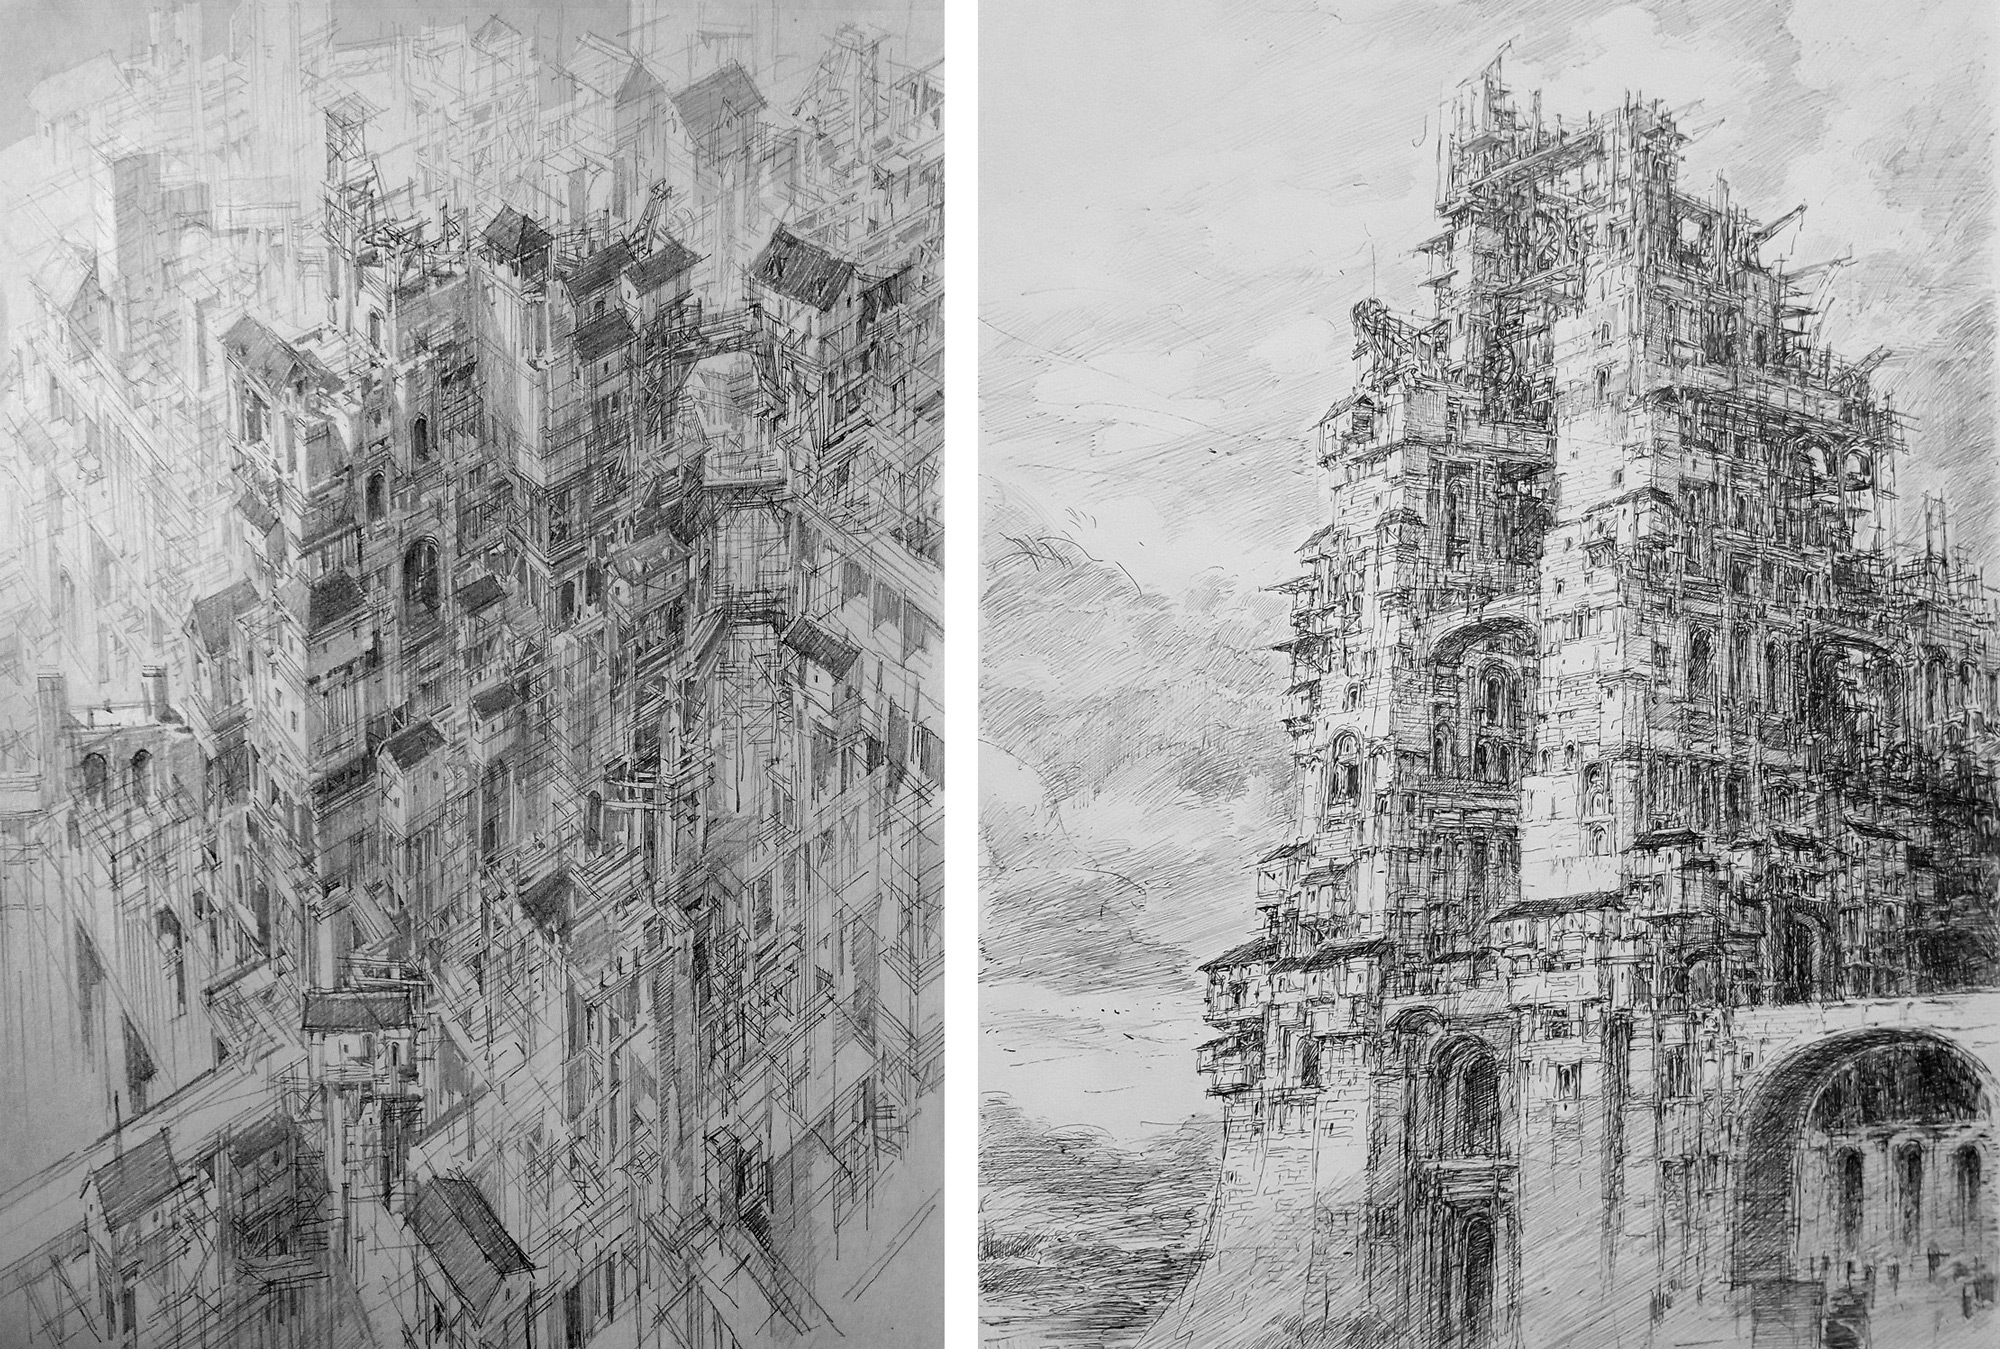 Infinite Cities Take Shape in Imagined Architectural Drawings by JaeCheol Park Artes & contextos jaecheol park 13